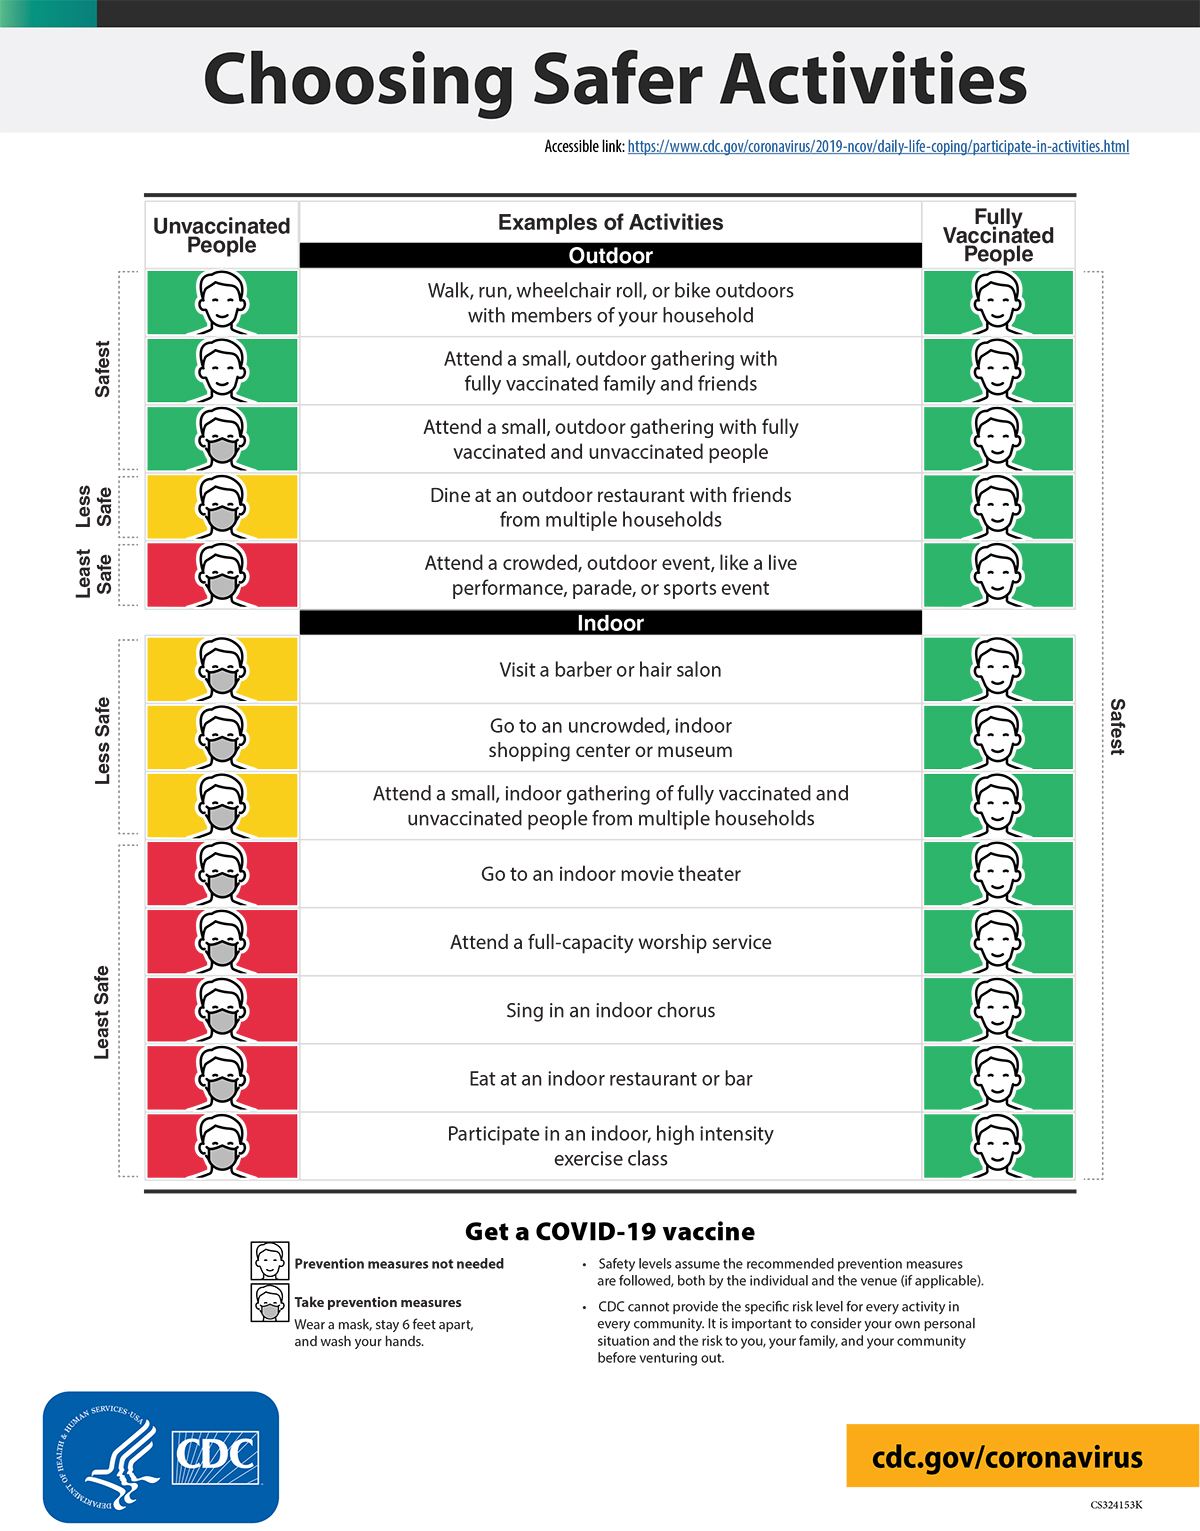 An infographic showing CDC COVID-19 recommendations about wearing masks by people who are vaccinated and unvaccinated at different indoor and outdoor activities